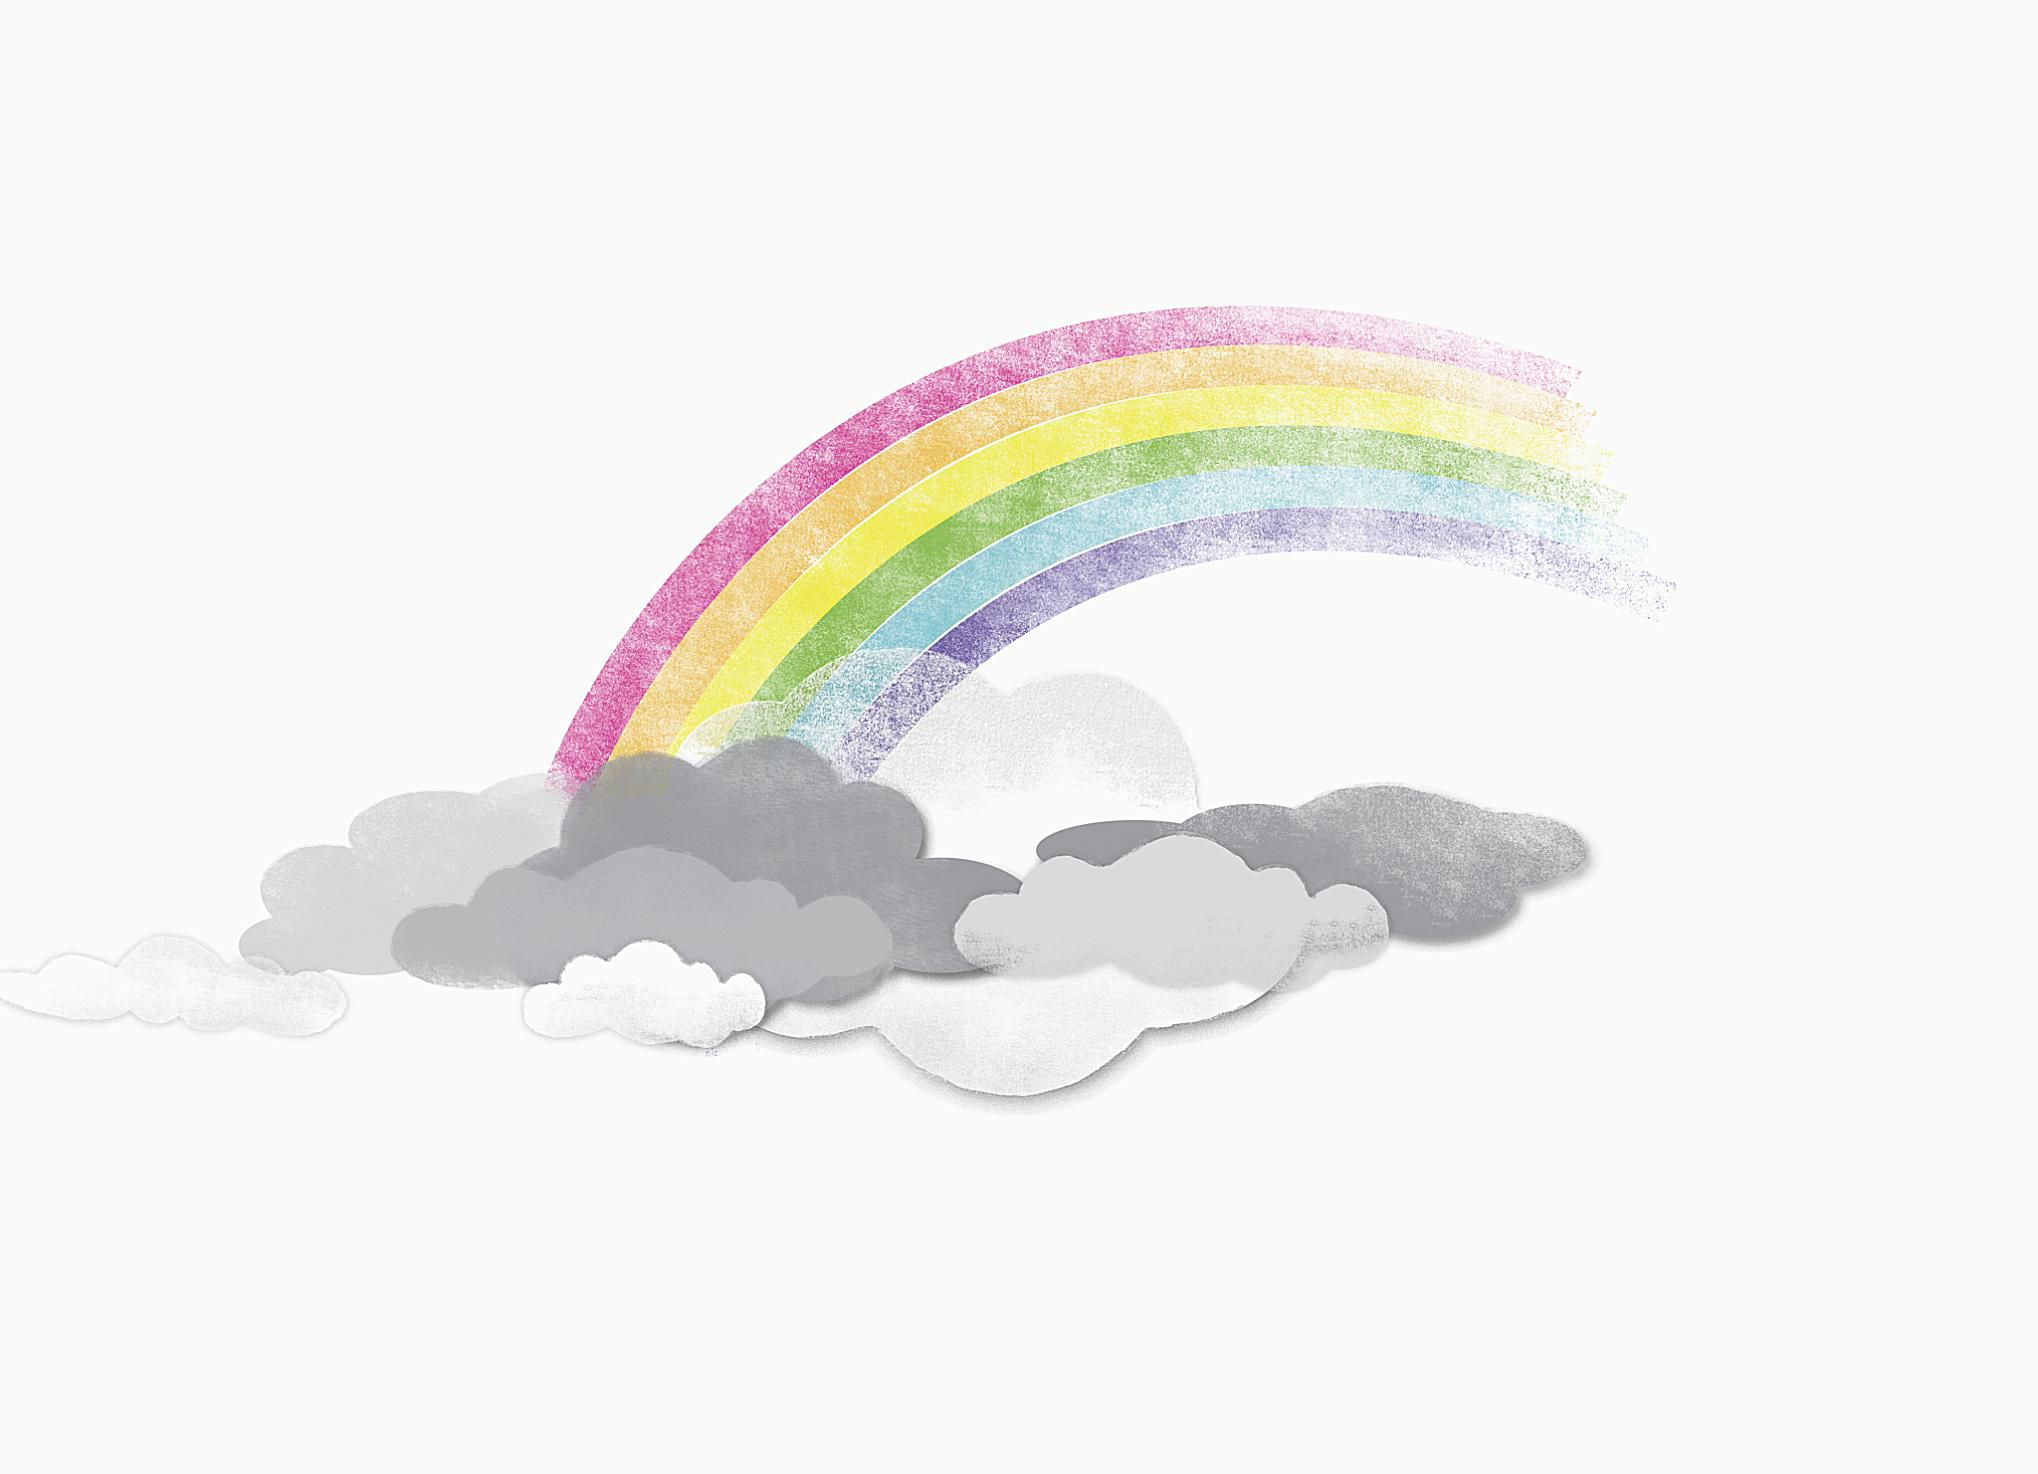 Rainbow in the Bible